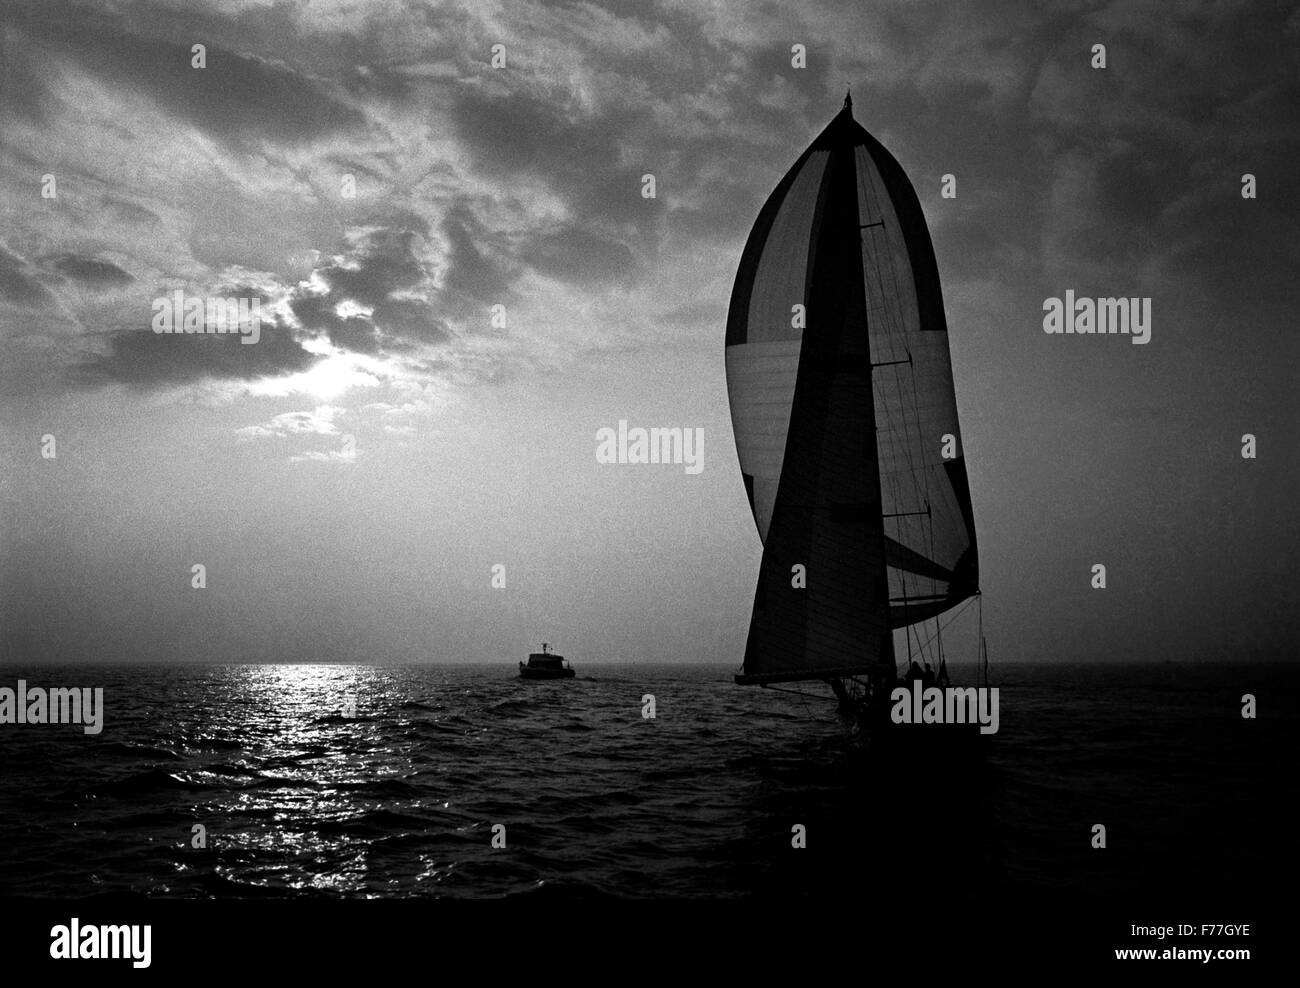 AJAXNETPHOTO. MARCH 29TH, 1982. PORTSMOUTH, ENGLAND -  FLYING DUTCHMAN NEARS RACE END - DUTCH YACHT FLYER NEARS - Stock Image